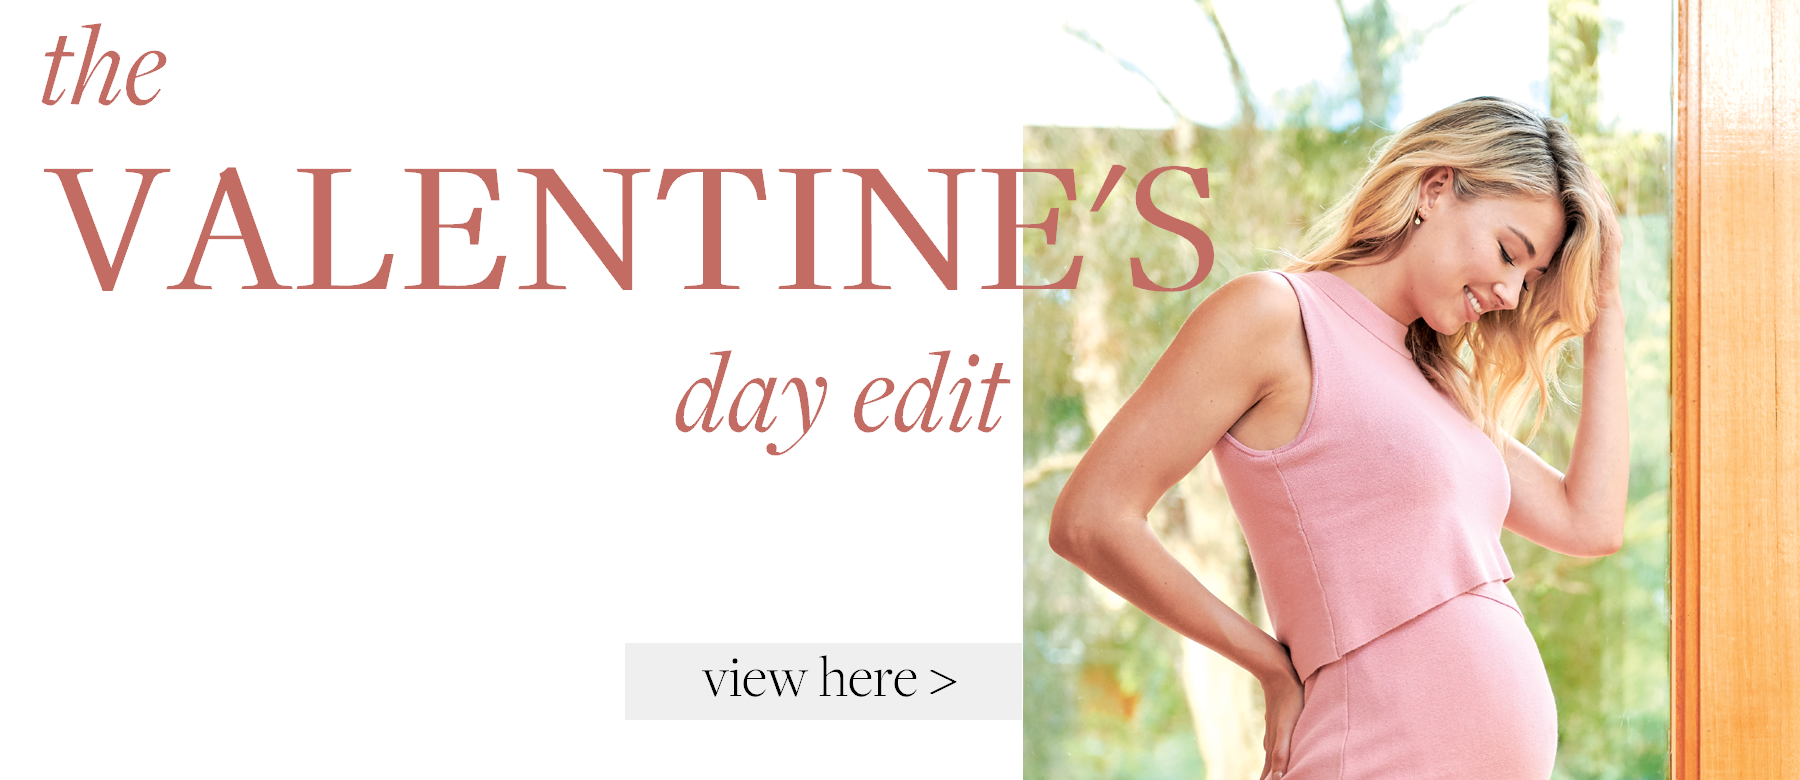 https://carrymaternity.ca/pages/the-valentines-day-edit